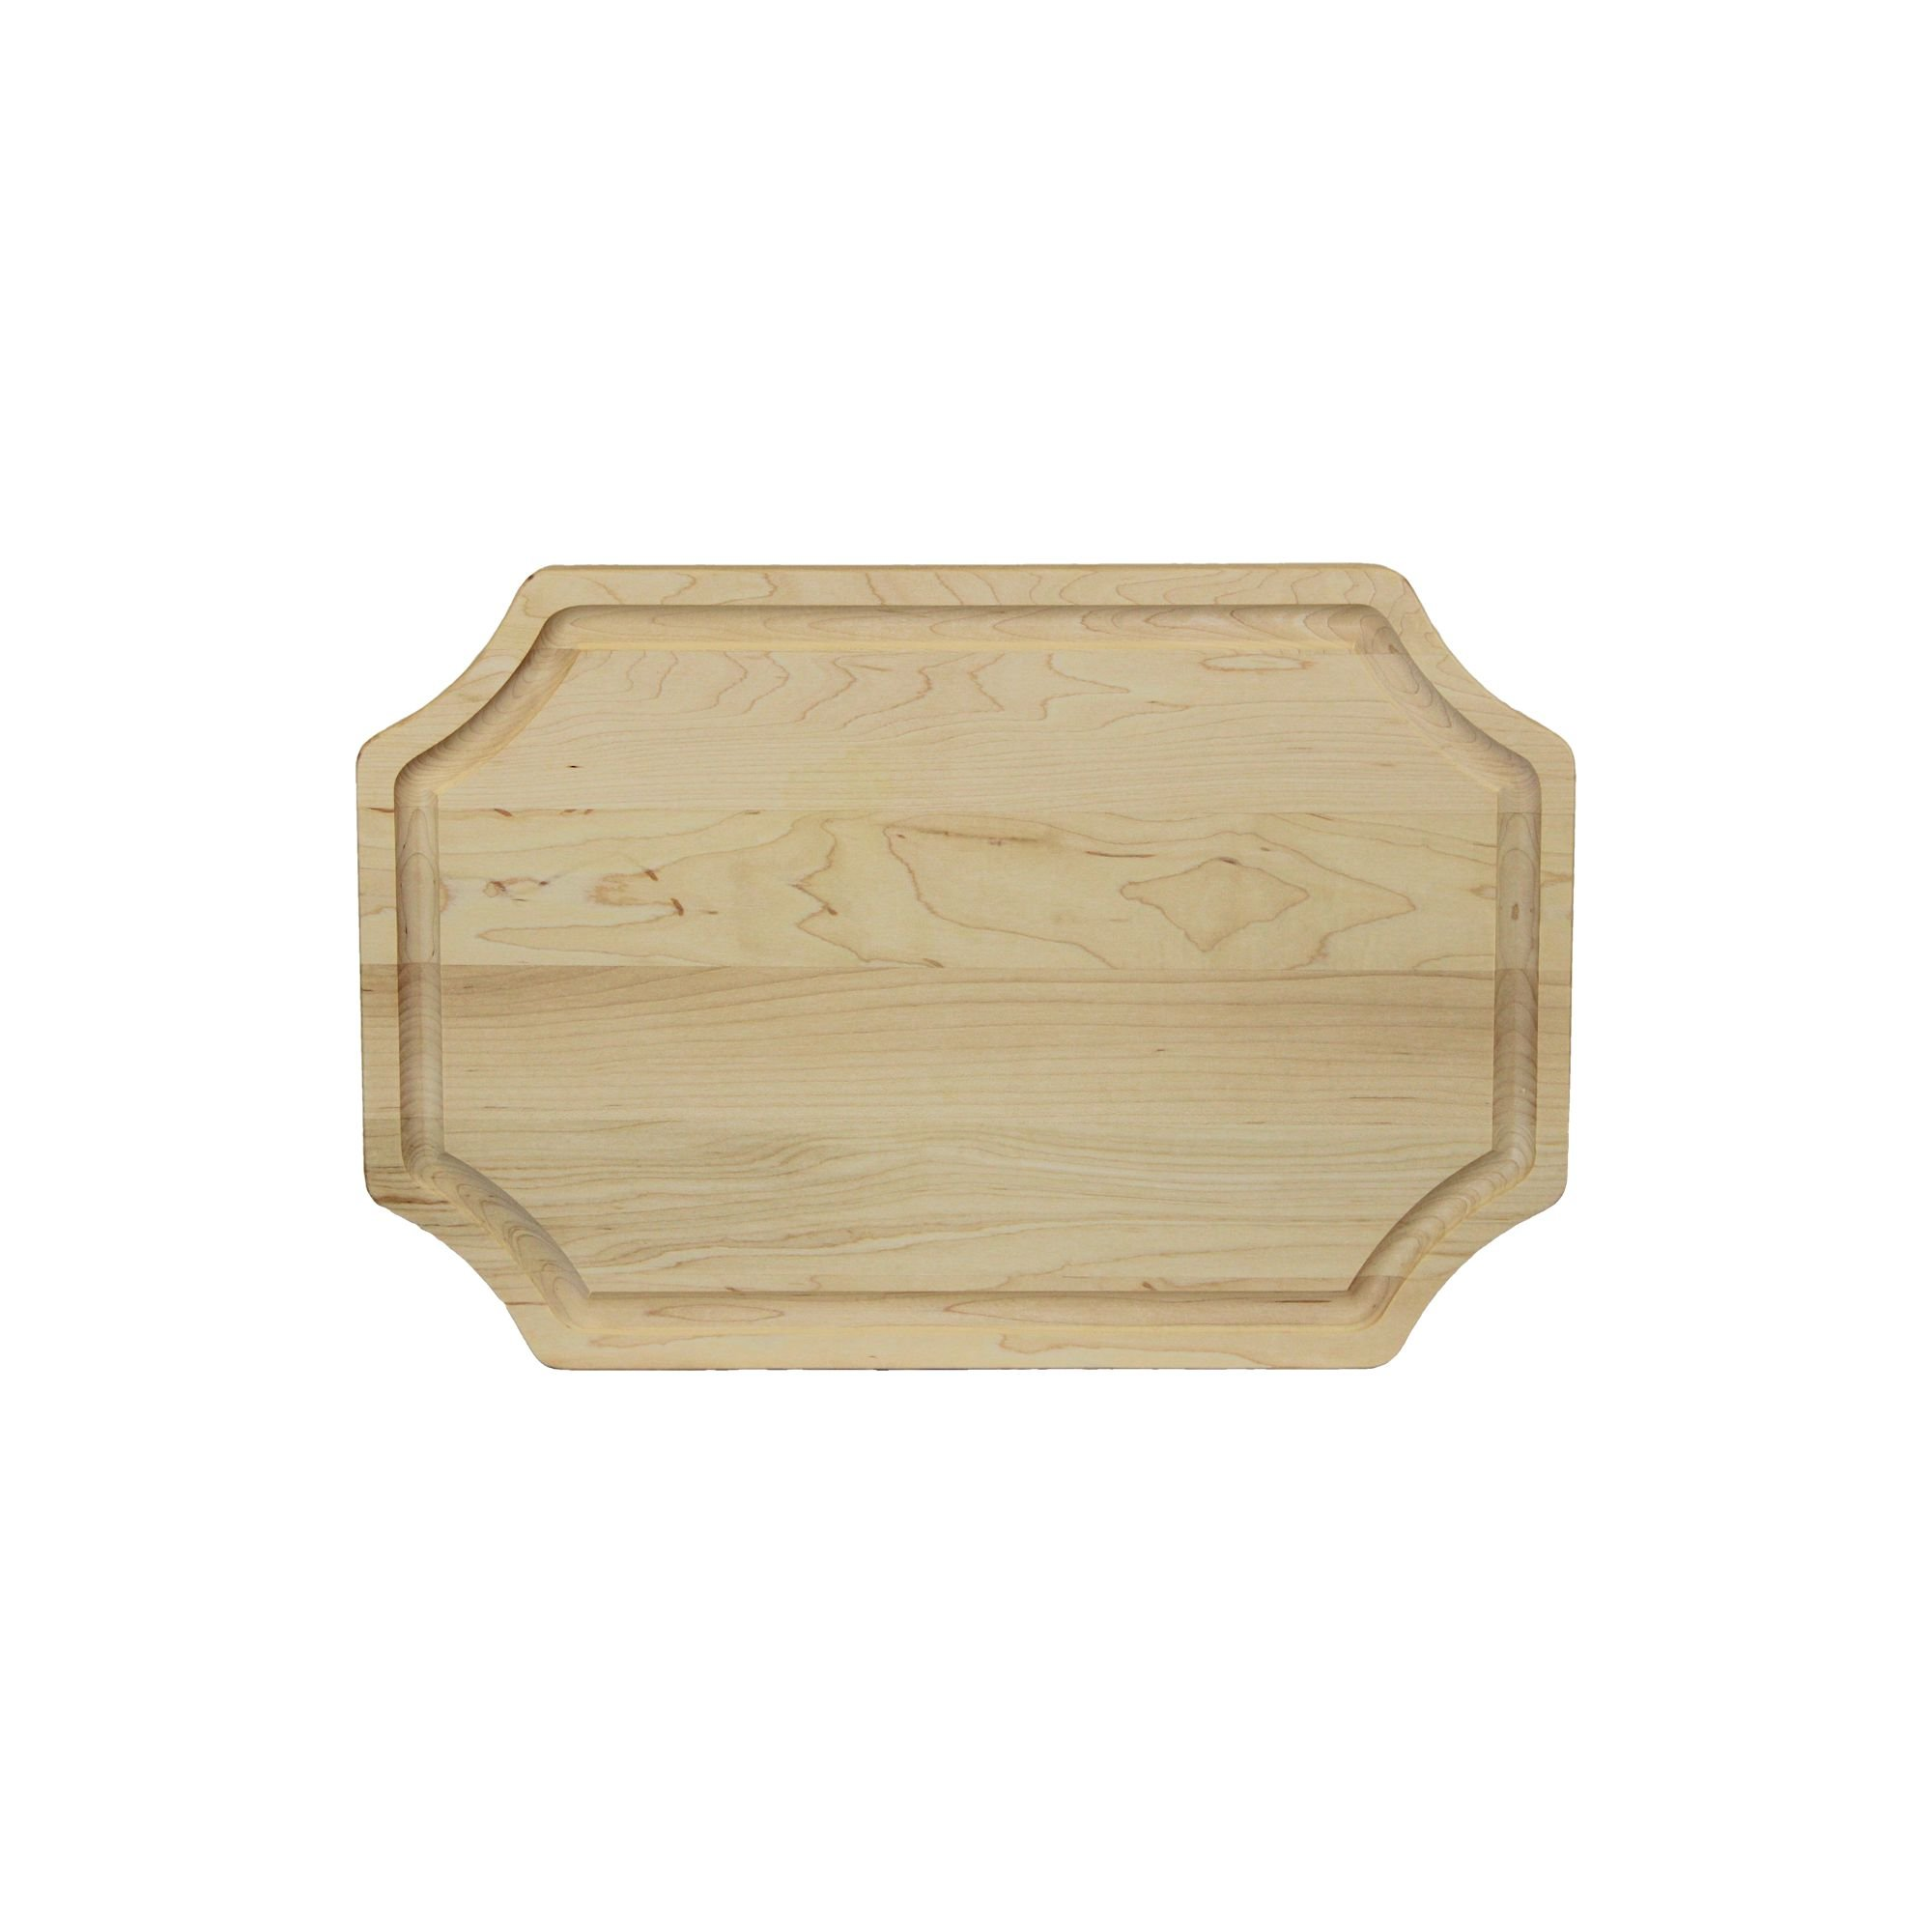 BigWood Boards 320-NI Carving Board, Carving Board with Juice Well, Large Wood Cutting Board with Juice Groove, Maple Serving Platter by BigWood Boards